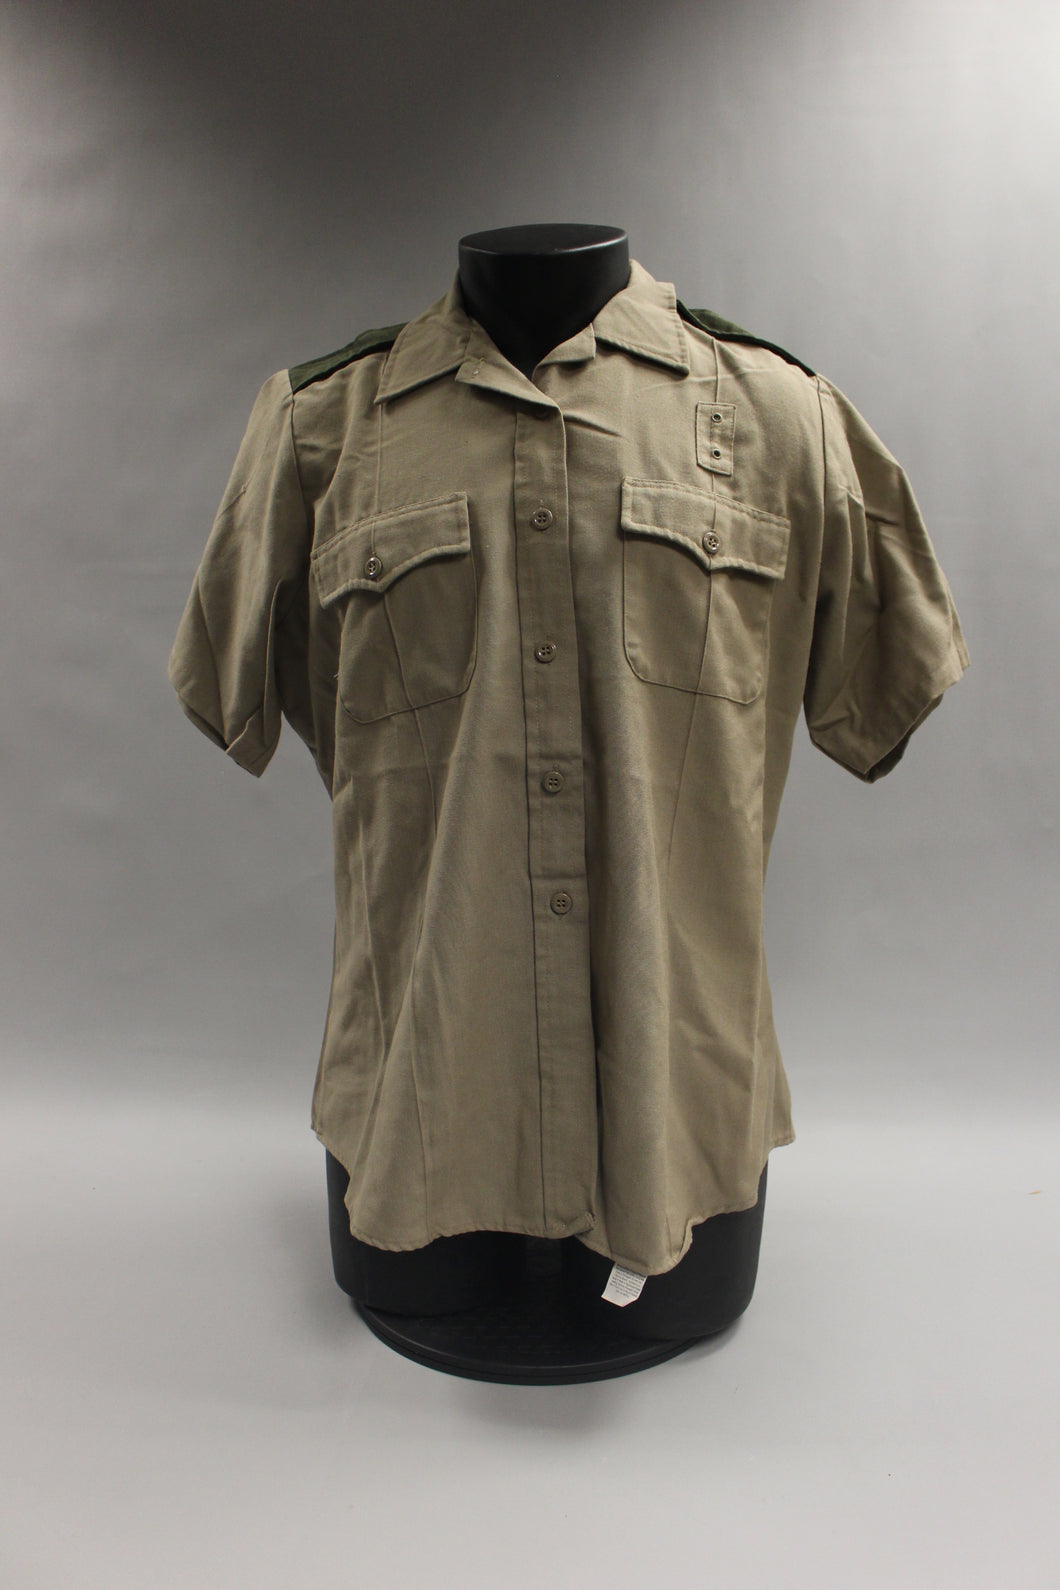 Flying Cross All Weather De Luxe Tropical Tan Work Shirt SS Size 44